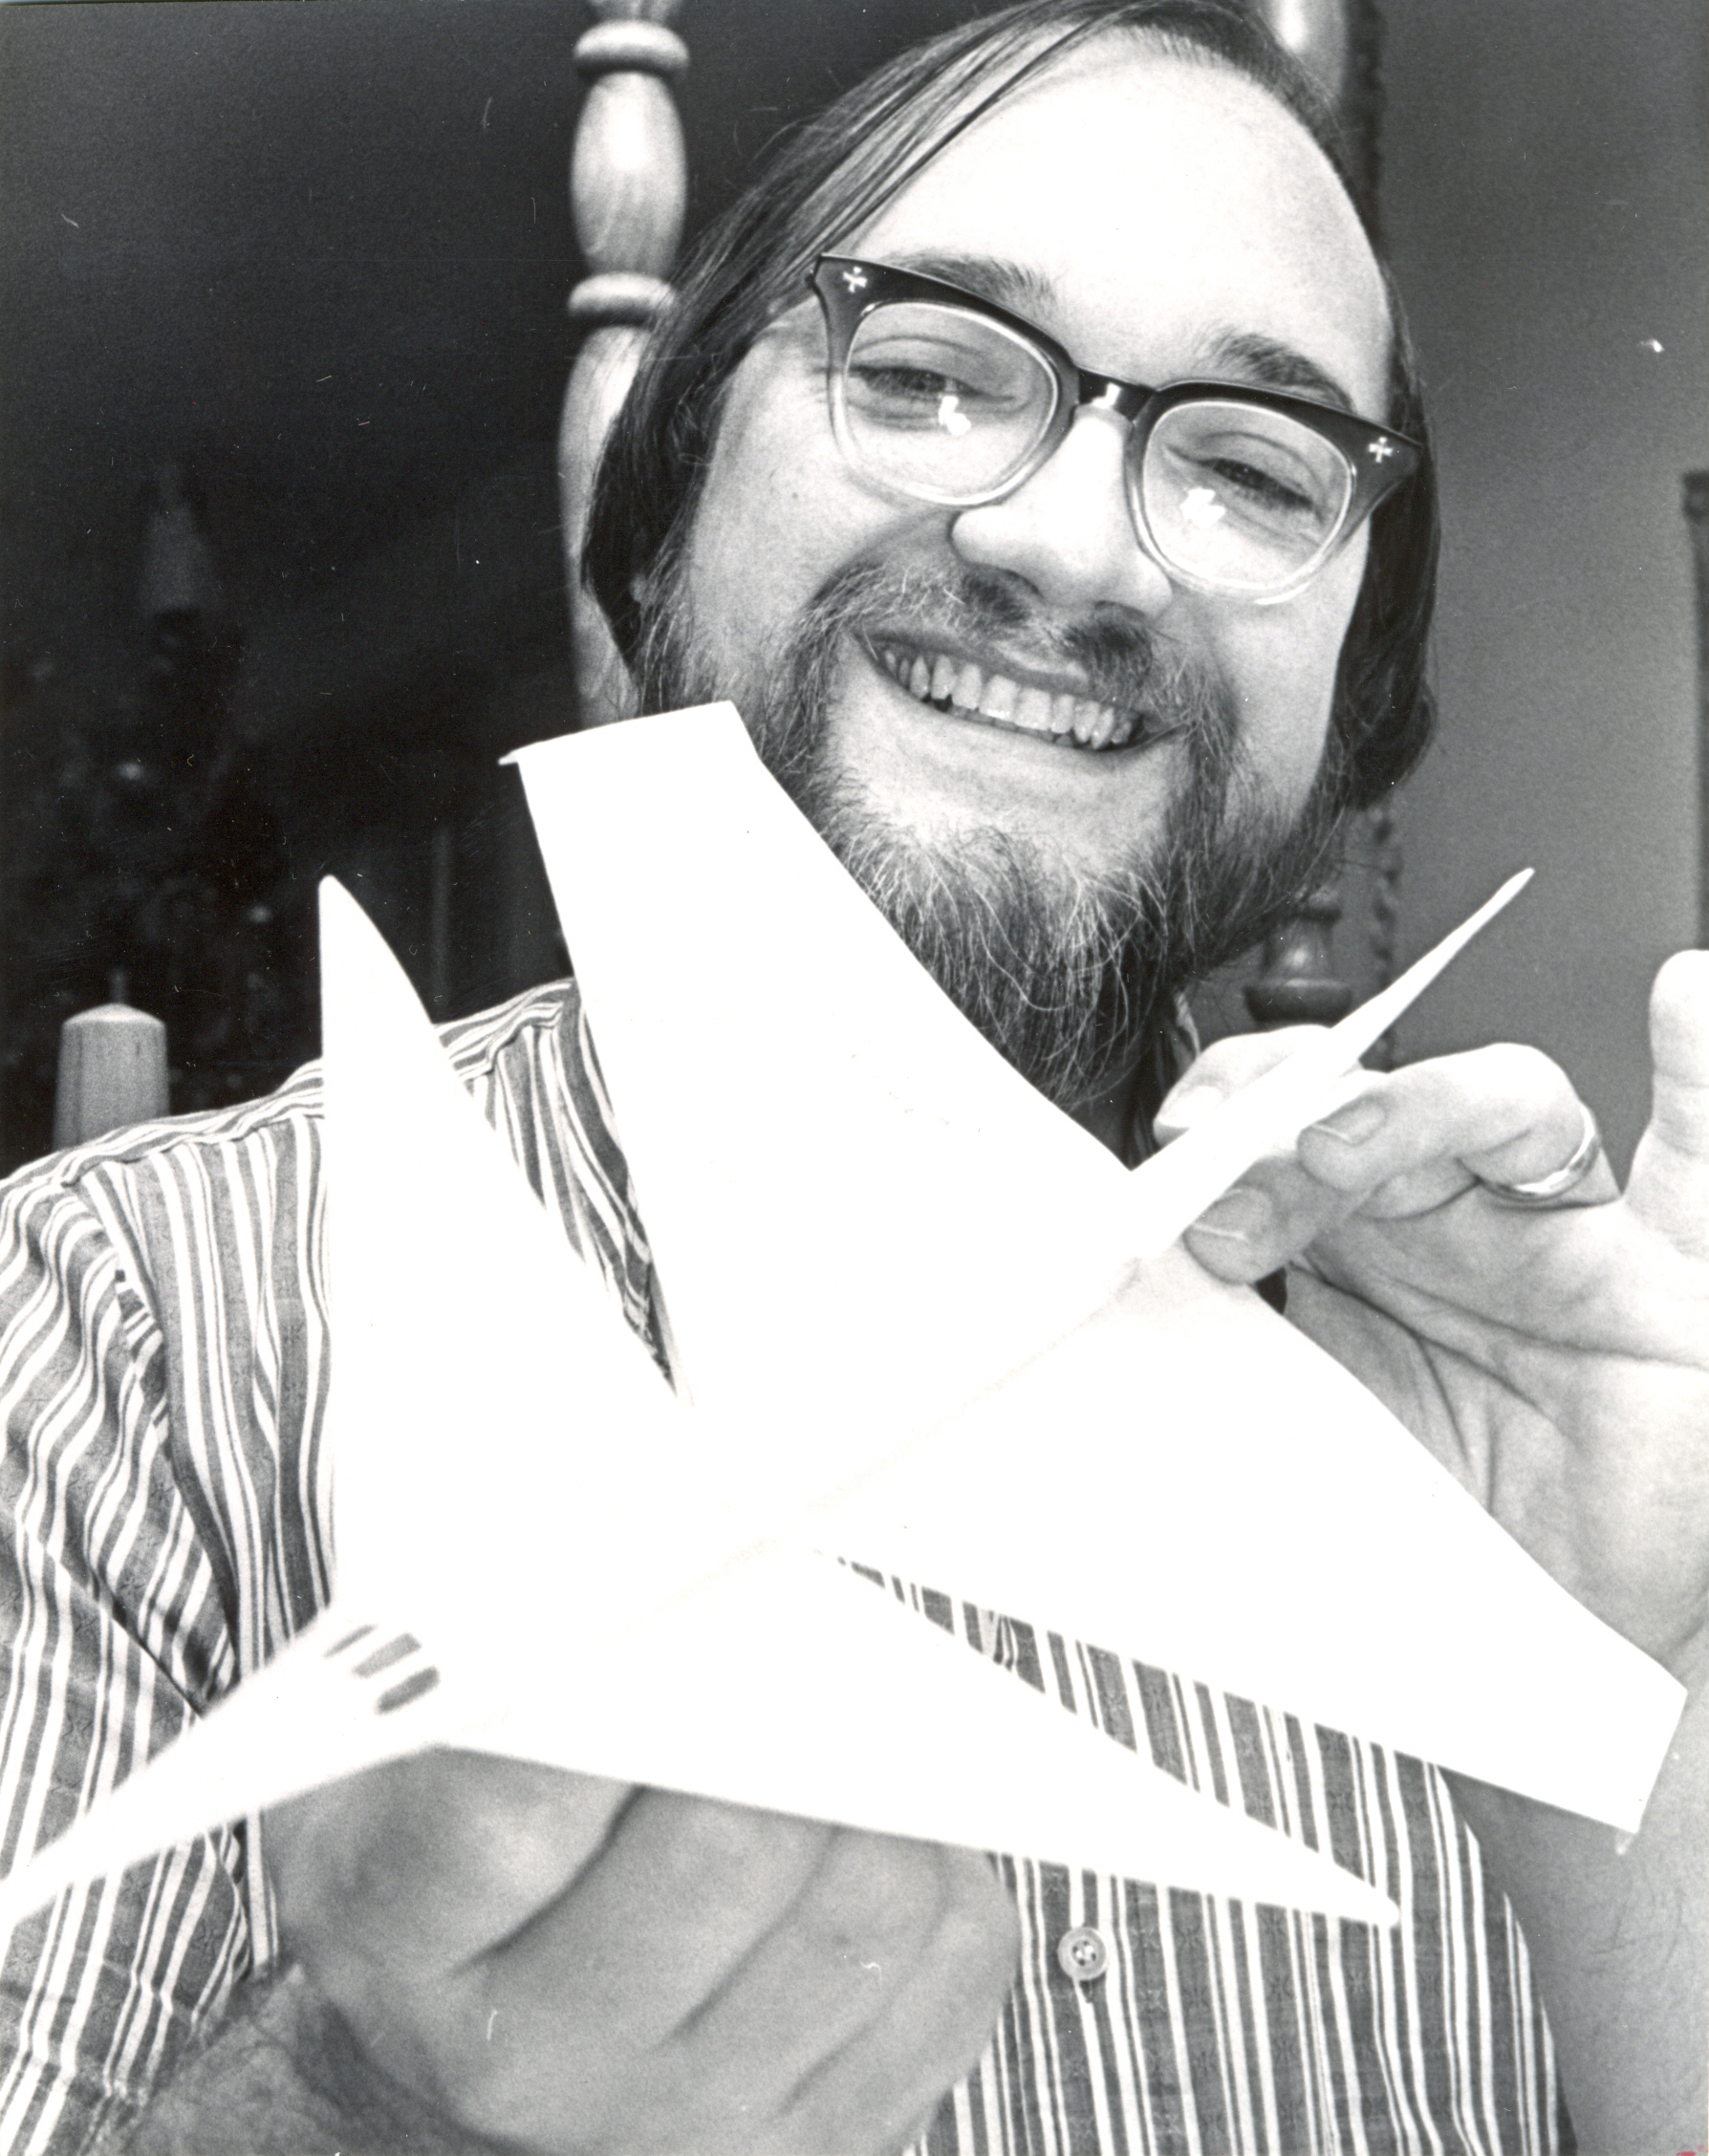 Frank H. Scott with one of the designs he plans to enter in the paper airplane contest at the Convention Center. Photo by Roberts. Dec. 1975. (Dayton Daily News Archive, DDNBW, Airplanes-paper-contests)